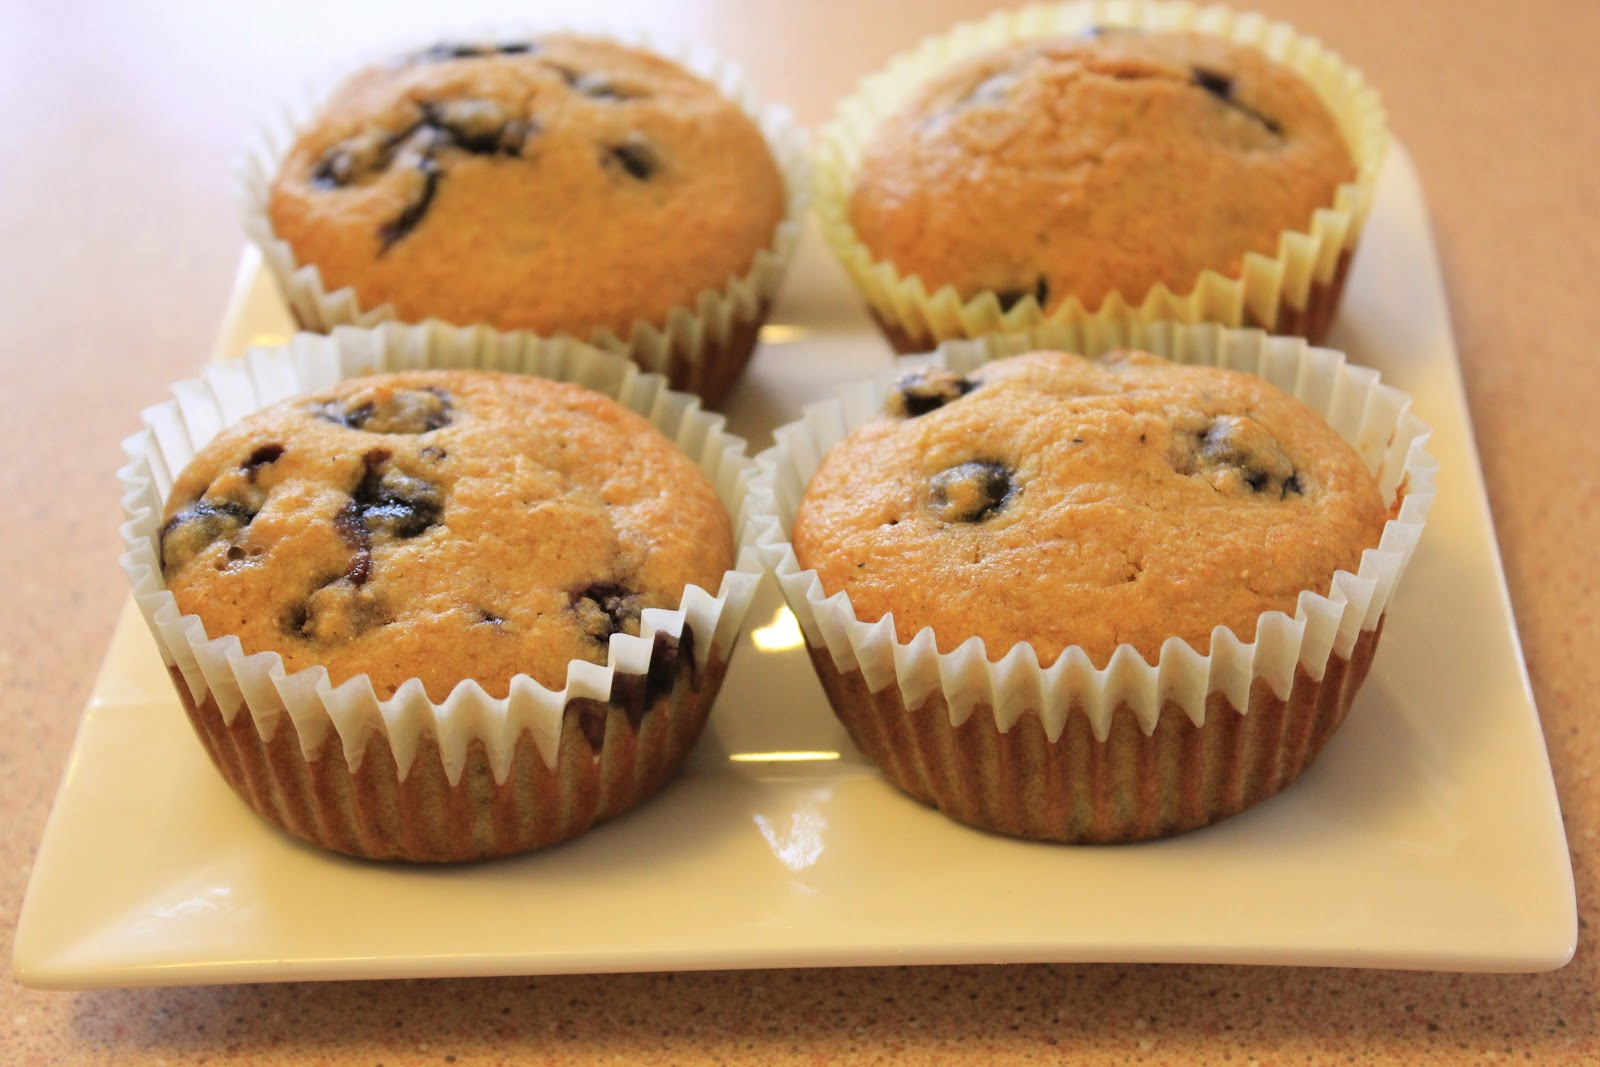 Fit and Lovin' it: Whole Grain Blueberry Corn Muffins